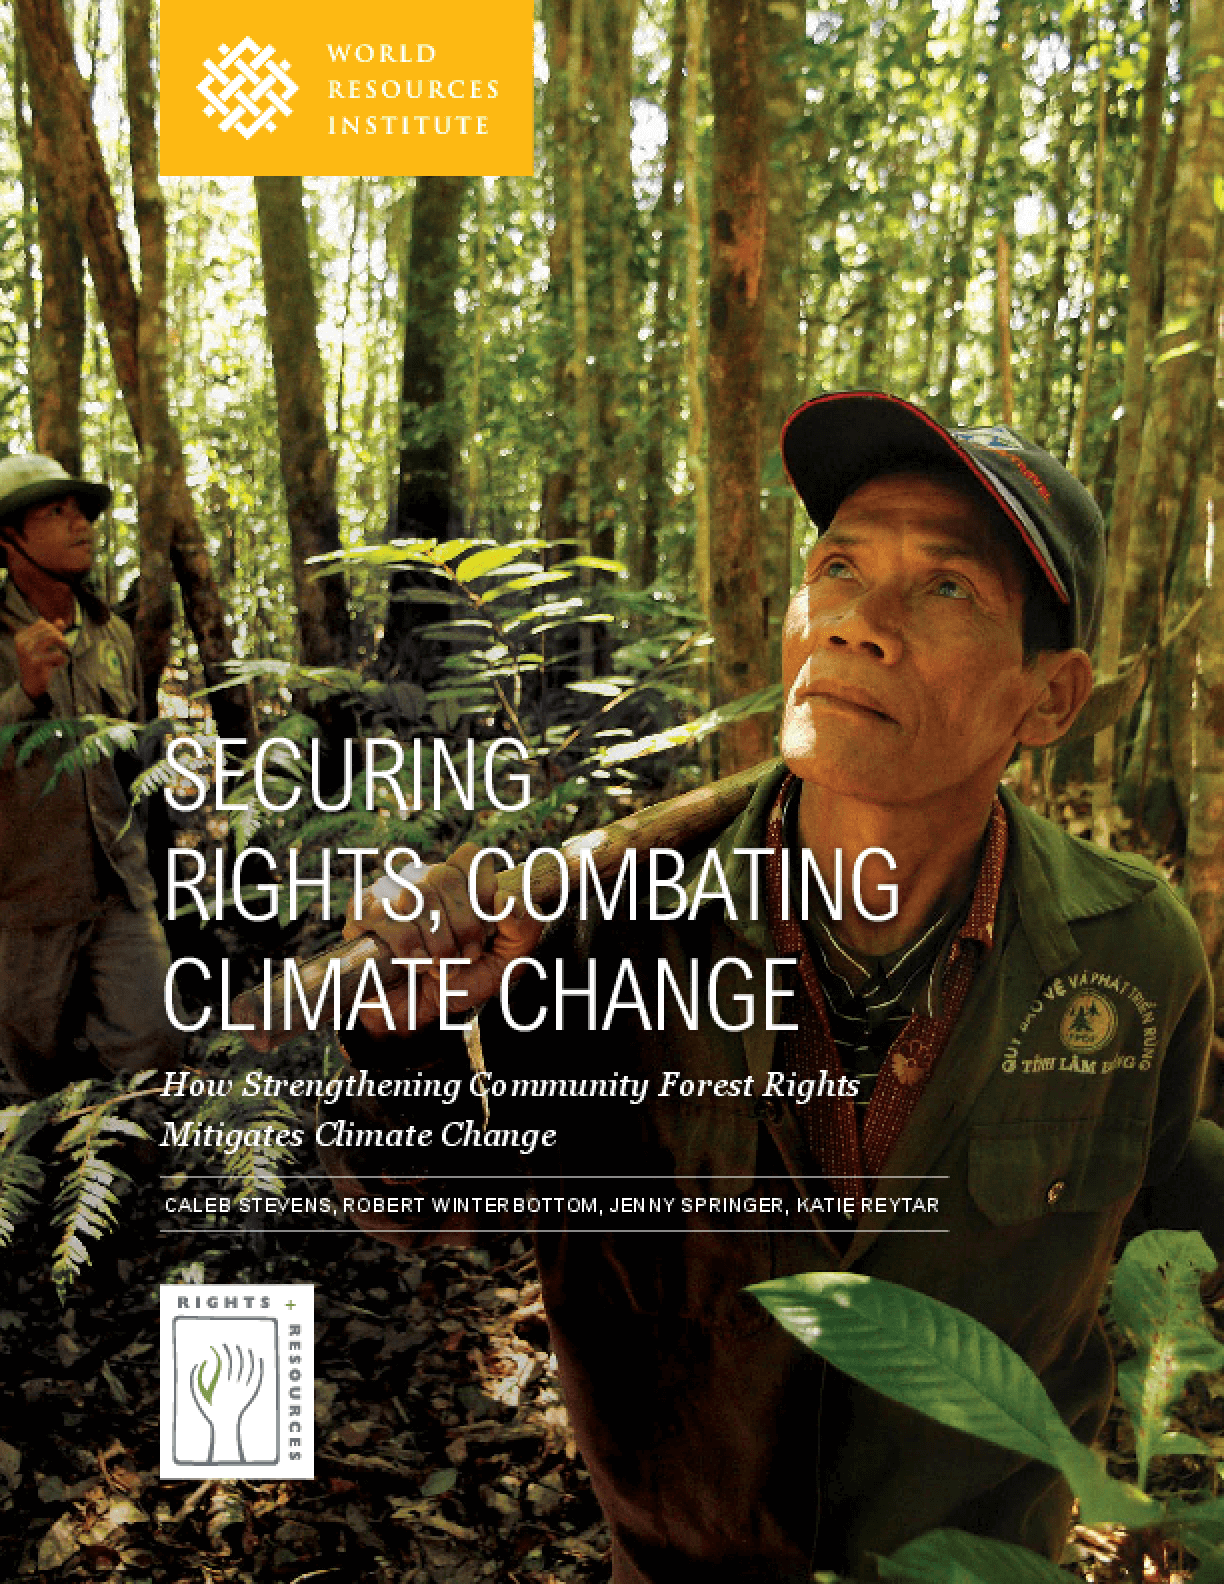 Securing Rights, Combating Climate Change: How Strengthening Community Forest Rights Mitigates Climate Change